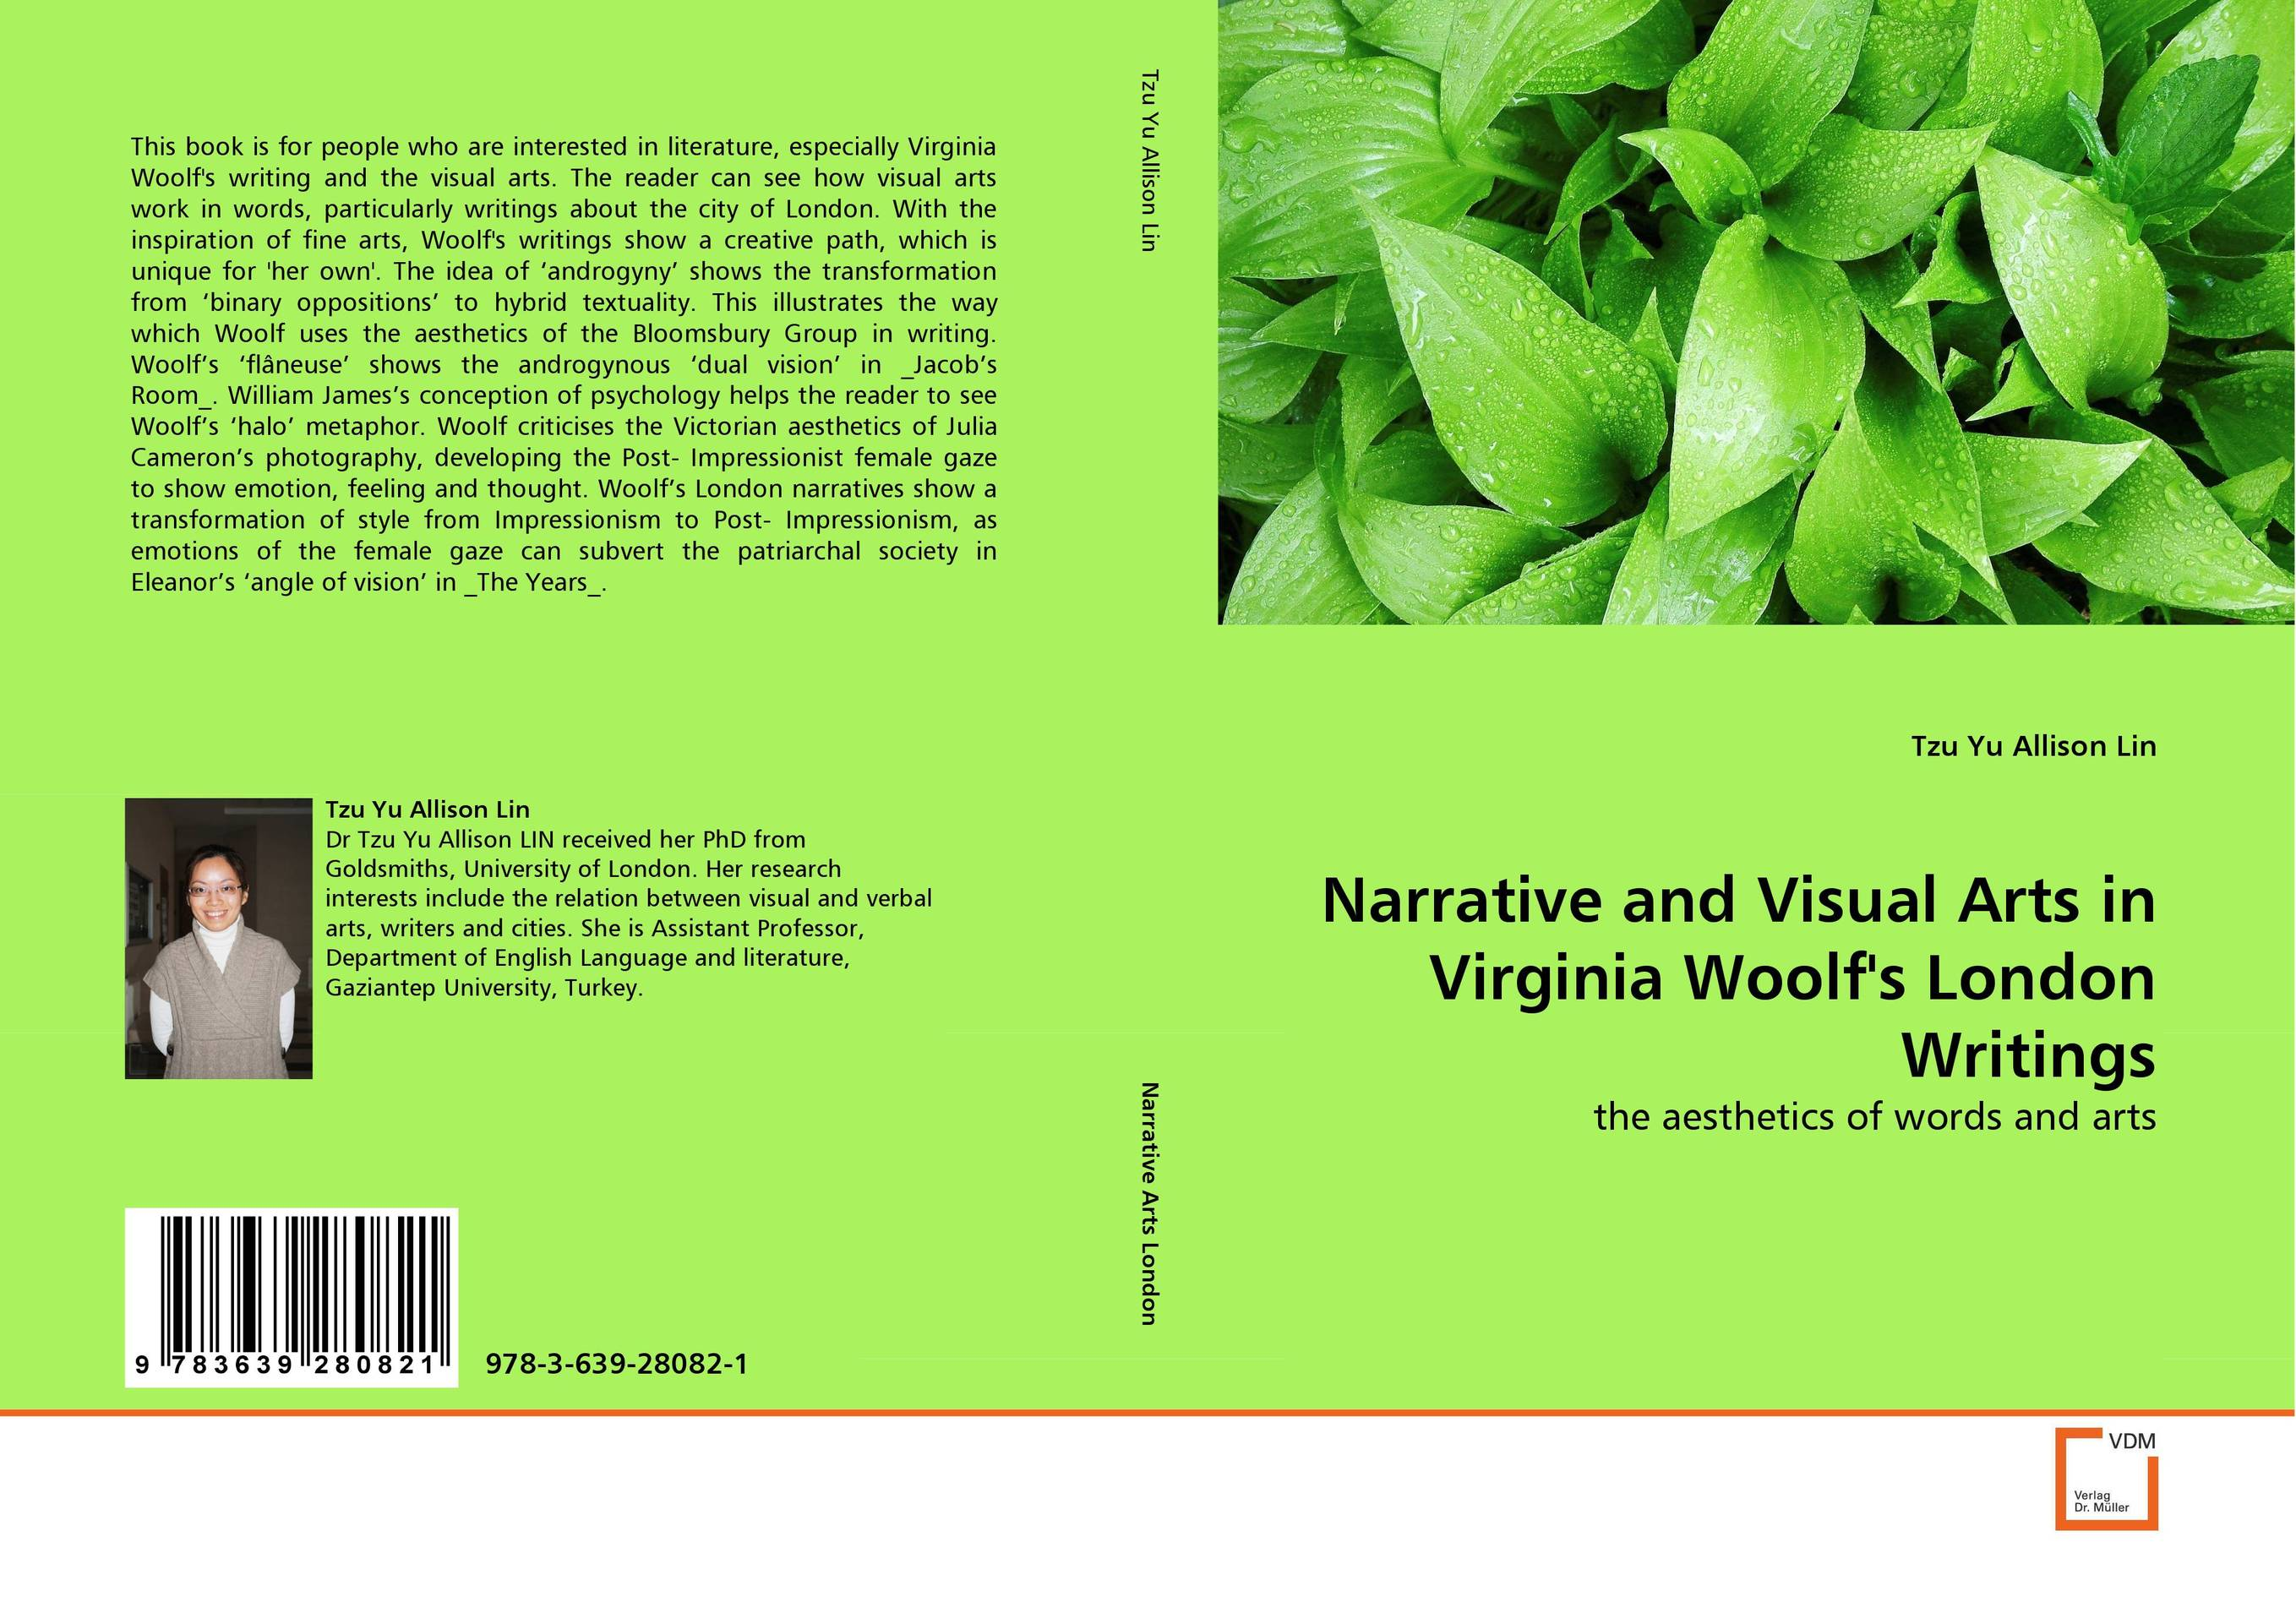 Narrative and Visual Arts in Virginia Woolf''s London Writings